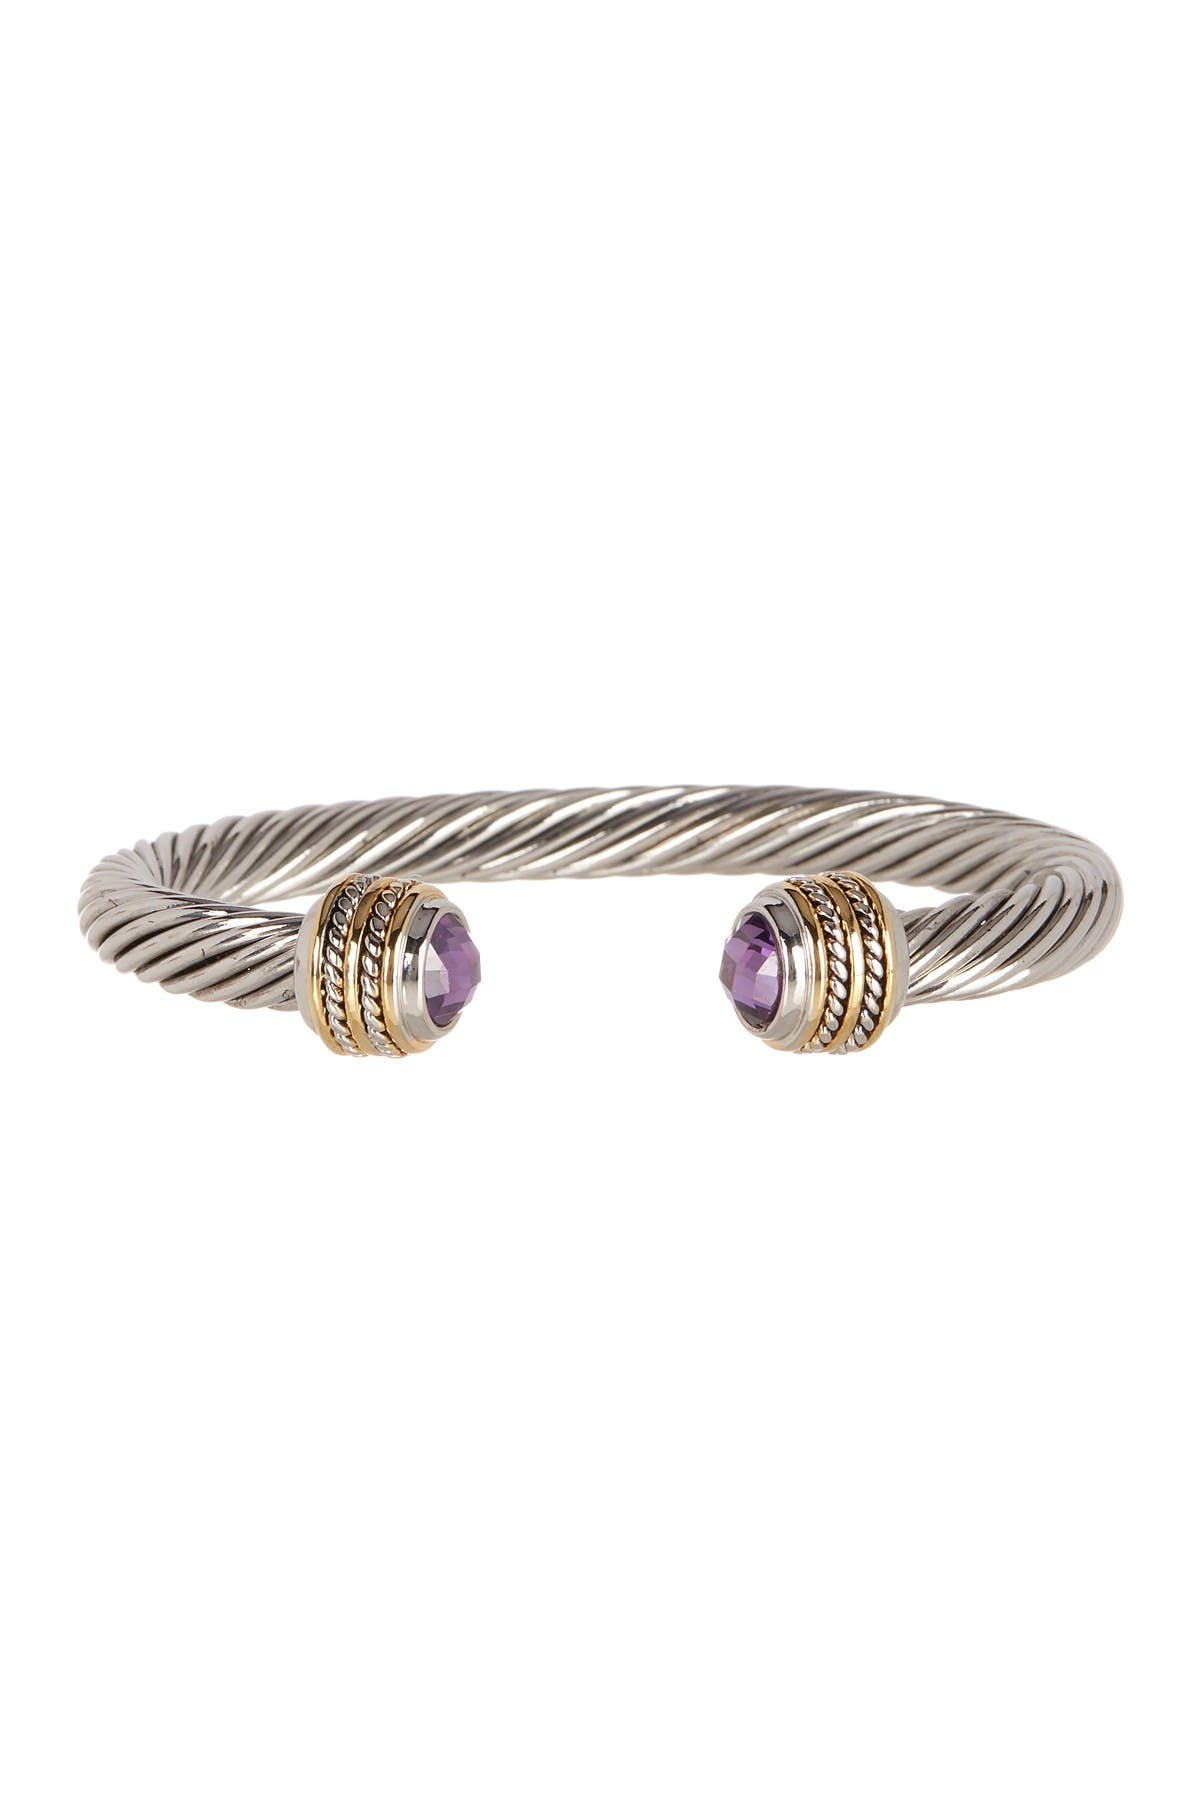 Image of Meshmerise Purple Amethyst End Twisted Cuff Bracelet